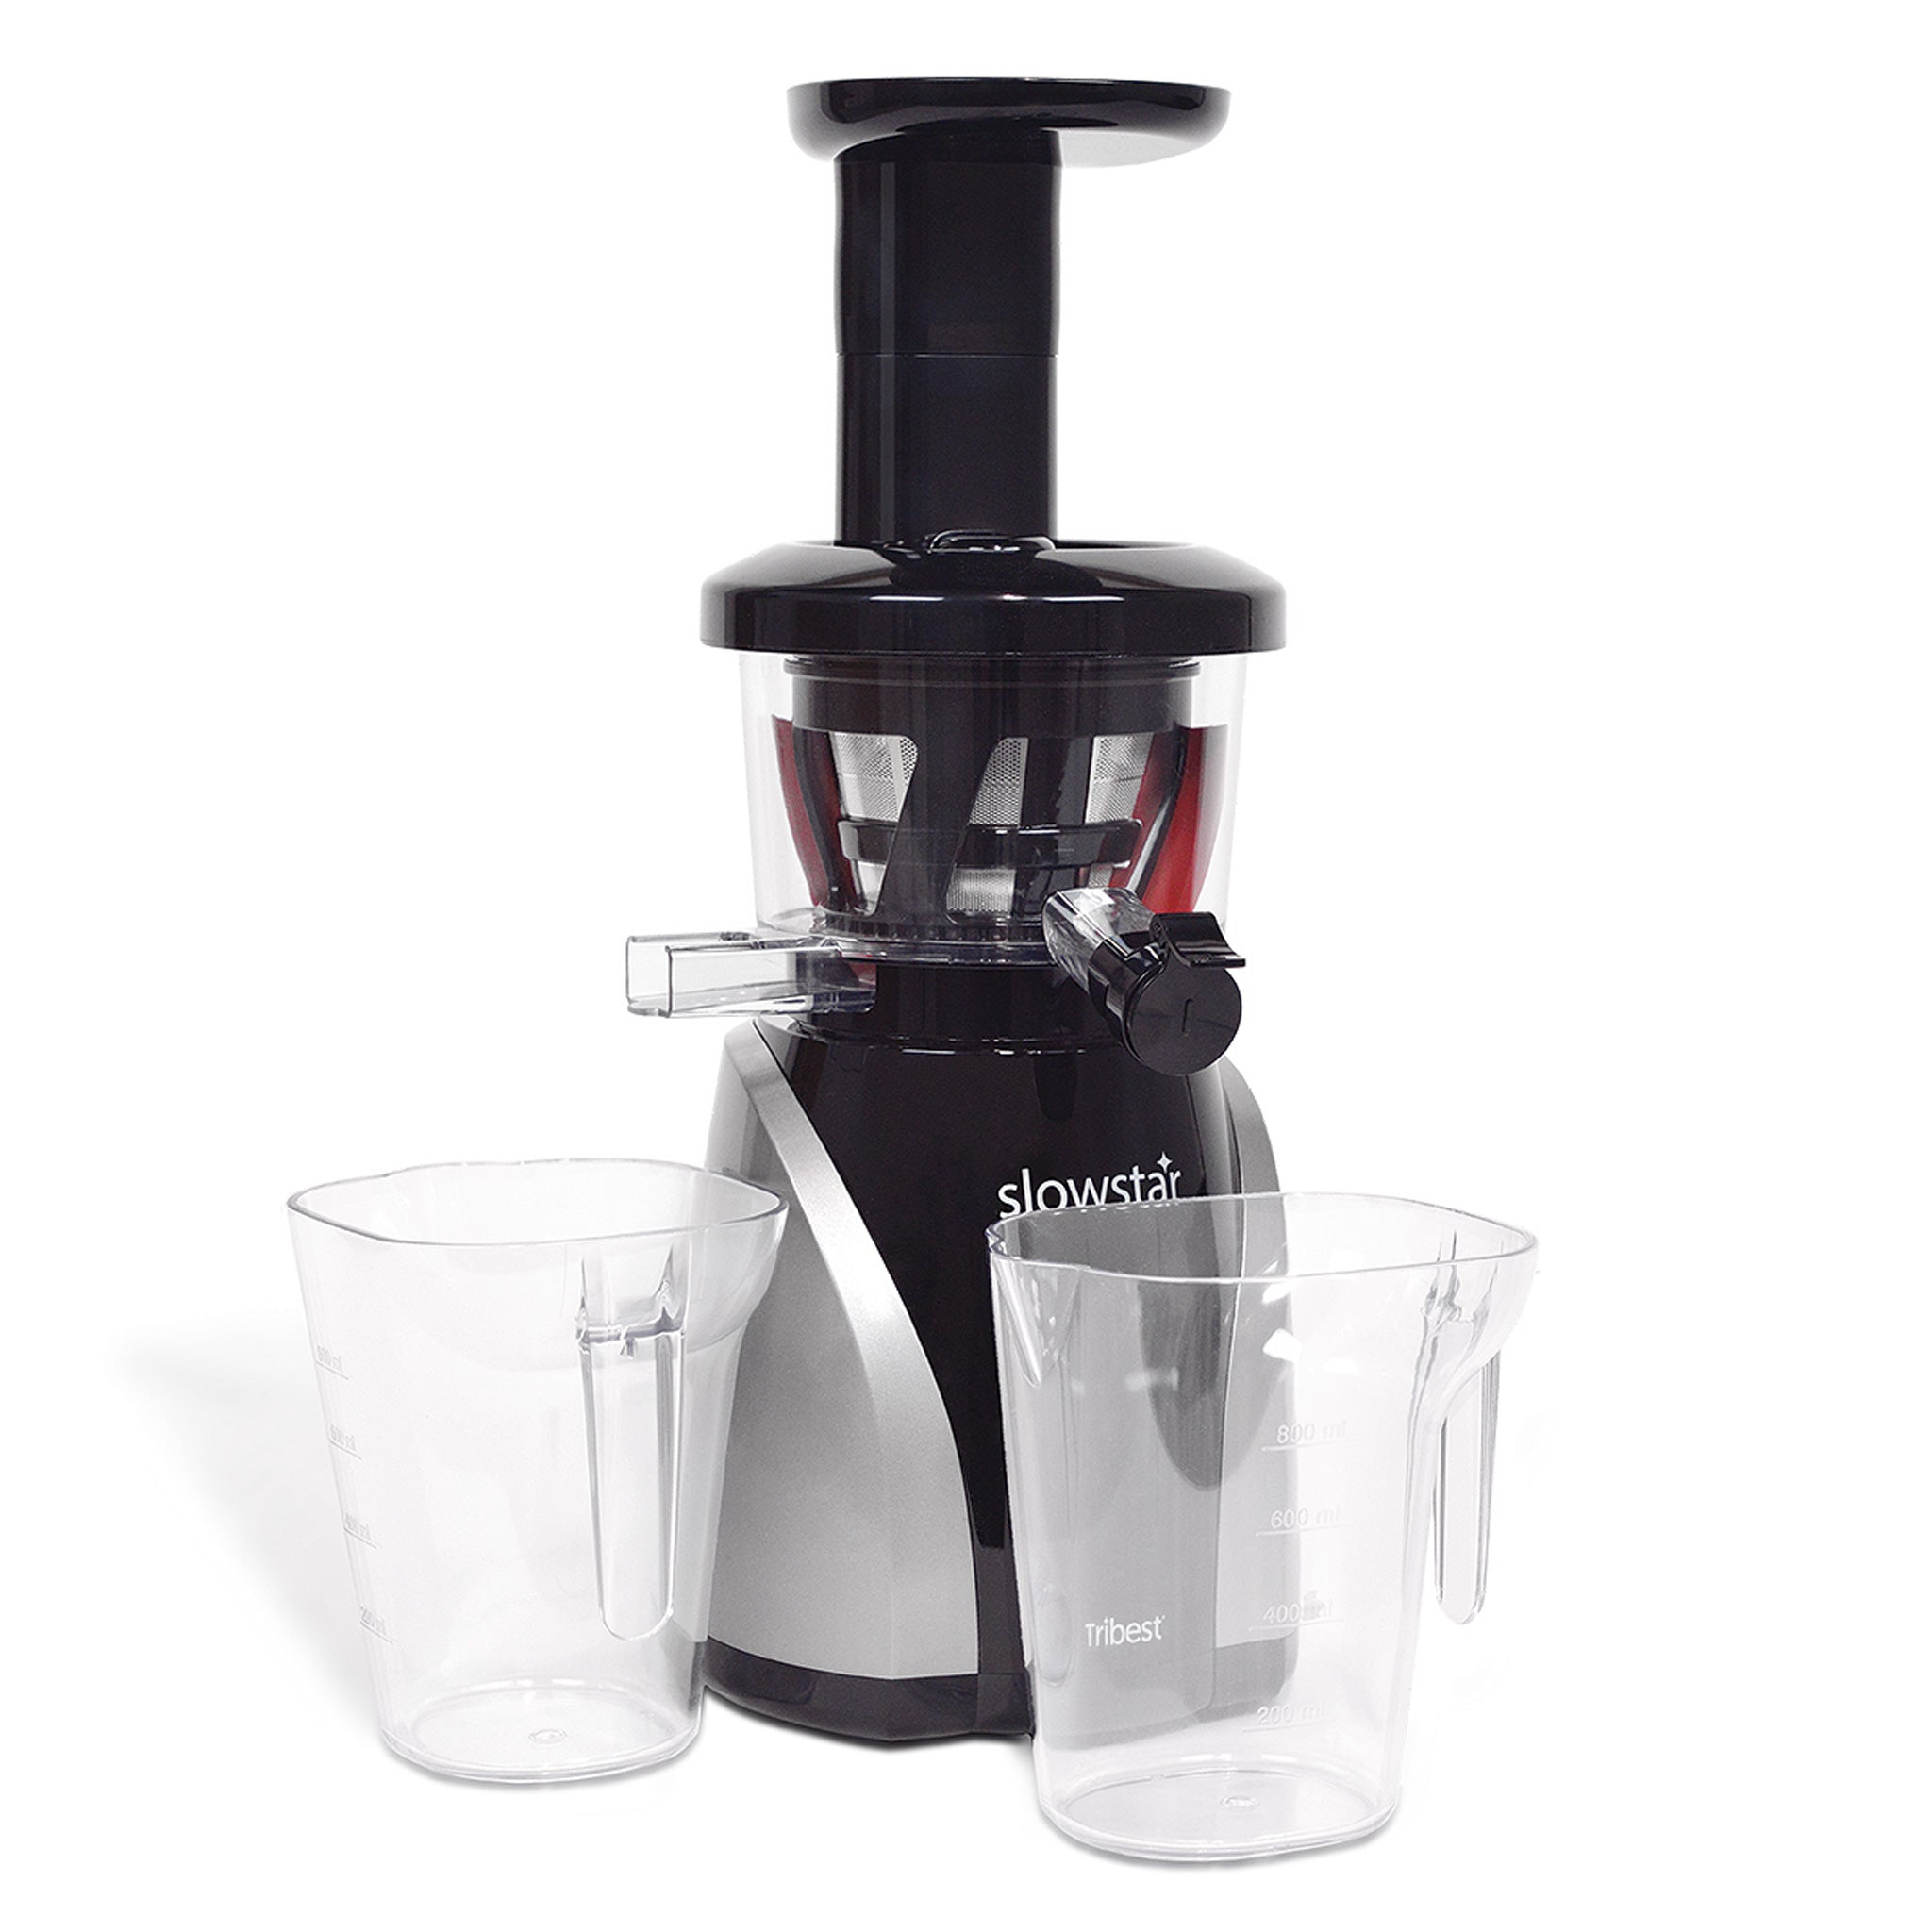 Slowstar® Vertical Slow Juicer & Mincer in Silver SW-2020-B - Tribest